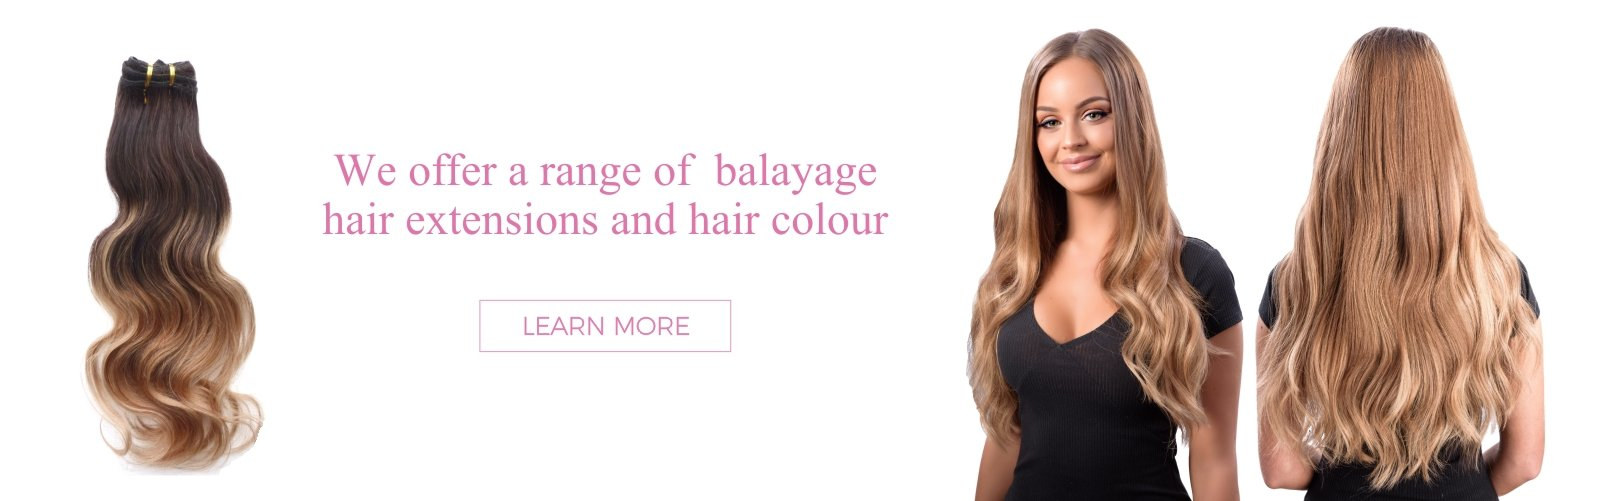 Hair Candy Extensions Australia 1 Hair Salon Gold Coast